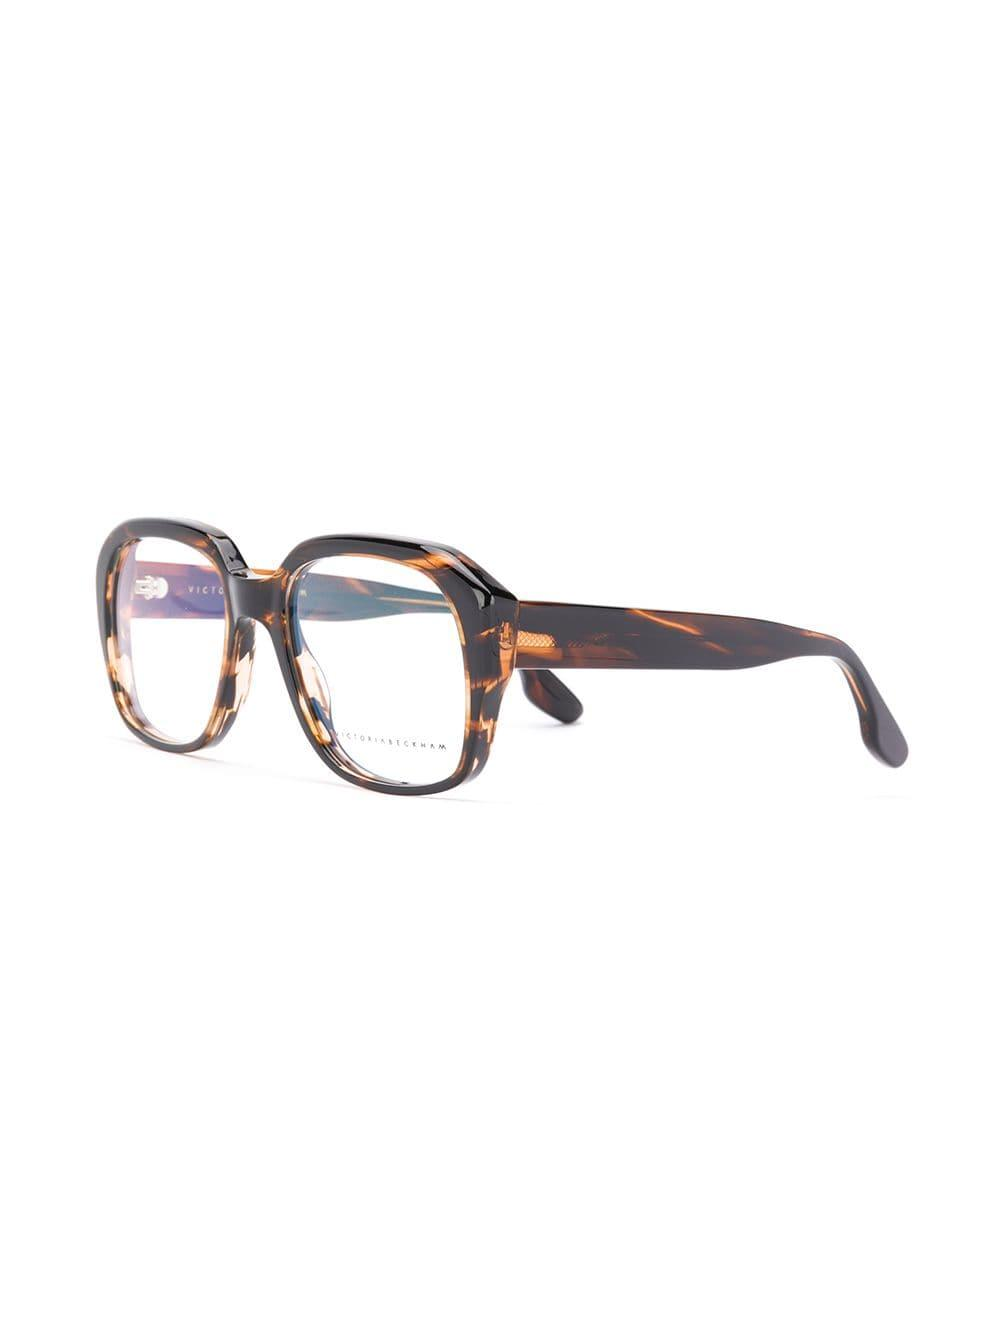 b148b1ffd7f Victoria Beckham Tortoise Shell Optical Glasses in Brown - Lyst